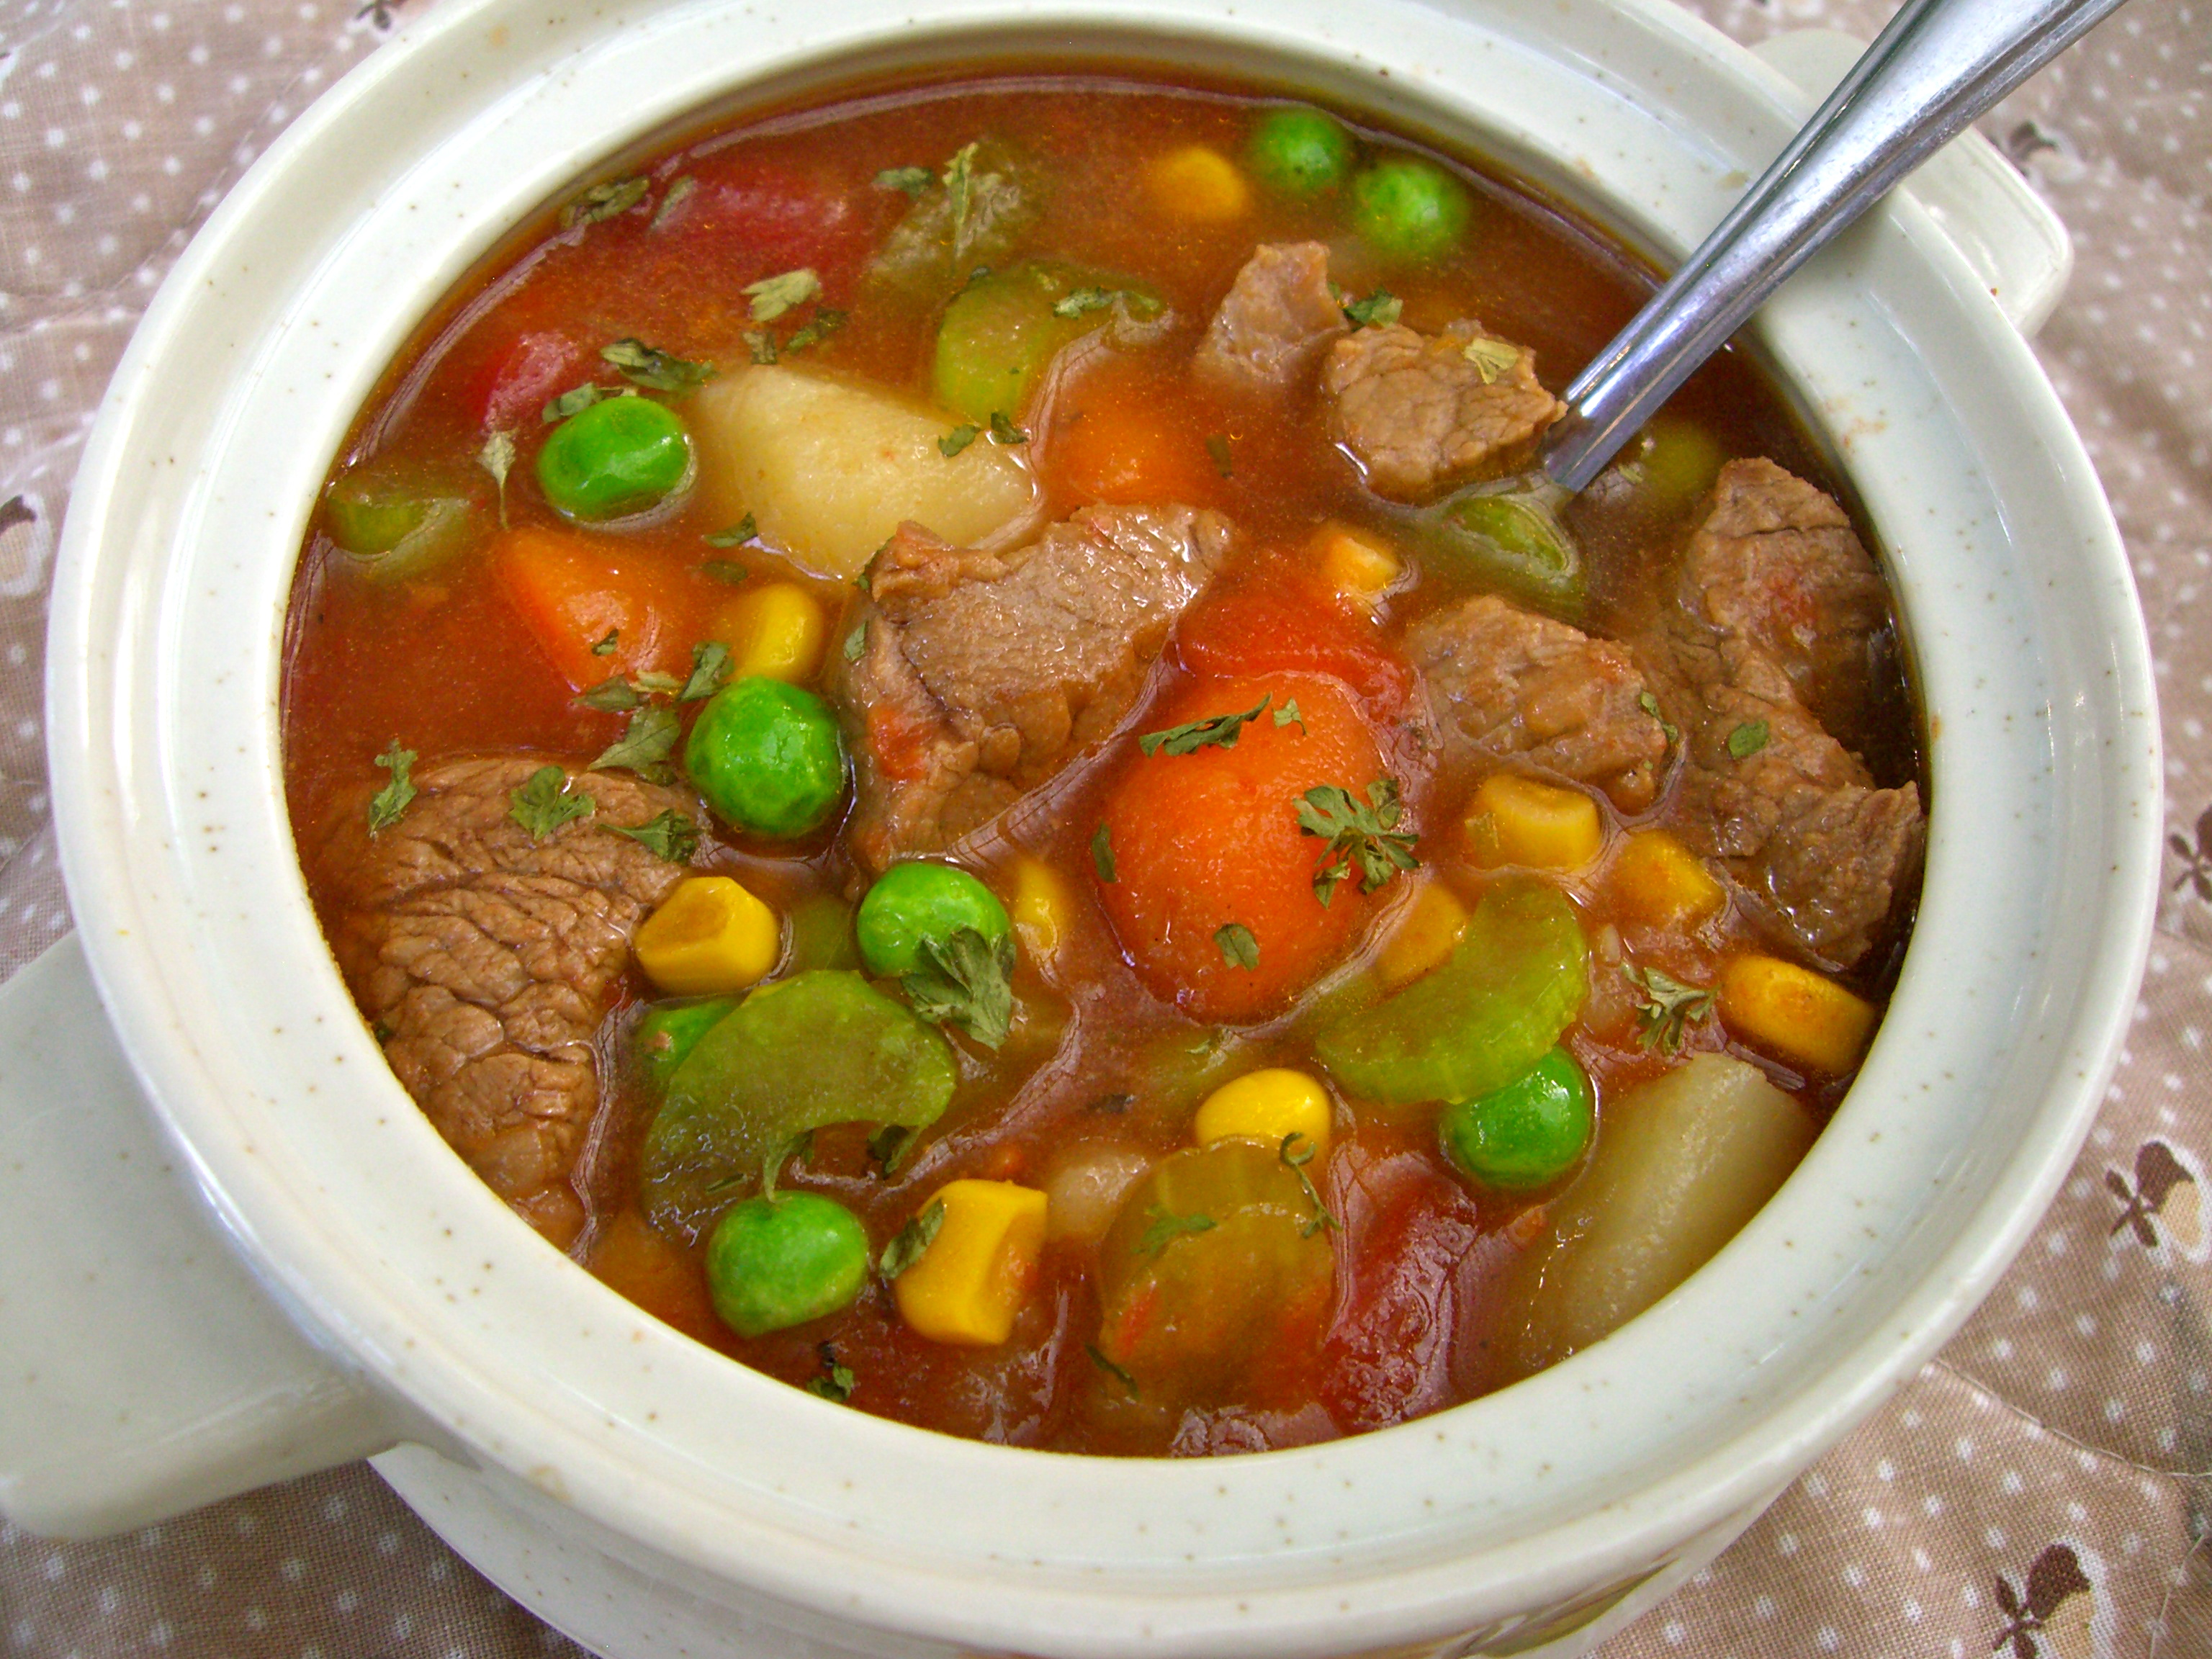 How To Make Old Fashioned Vegetable Beef Soup